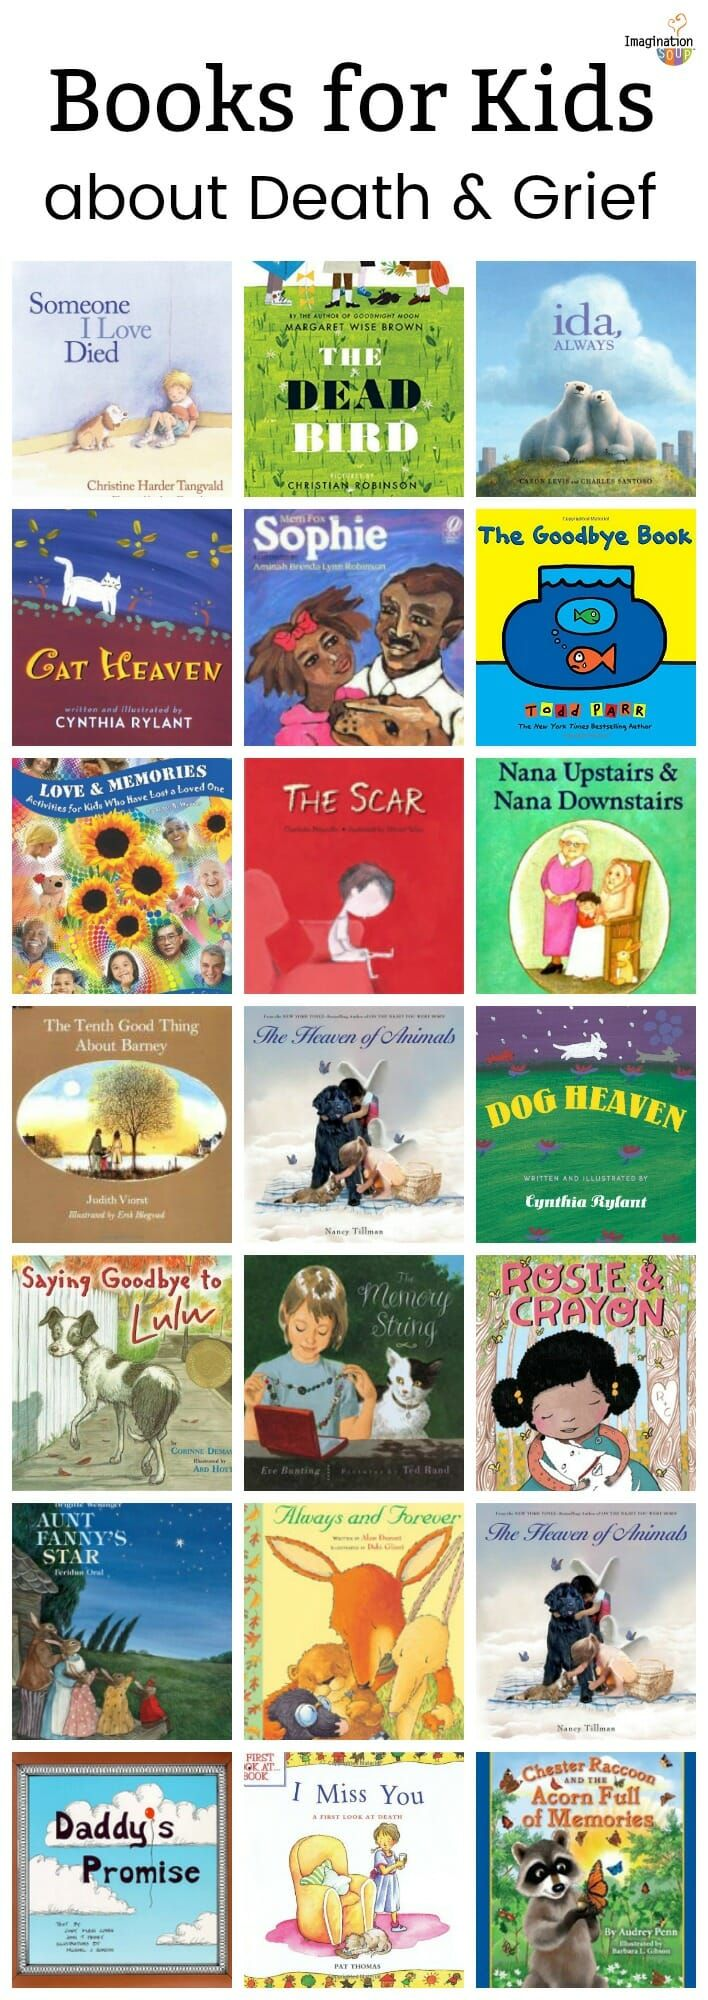 21 helpful picture books for children about grief and the death of a parent, relative, friend, or pet #grief #death #kids #childrensbooks #books